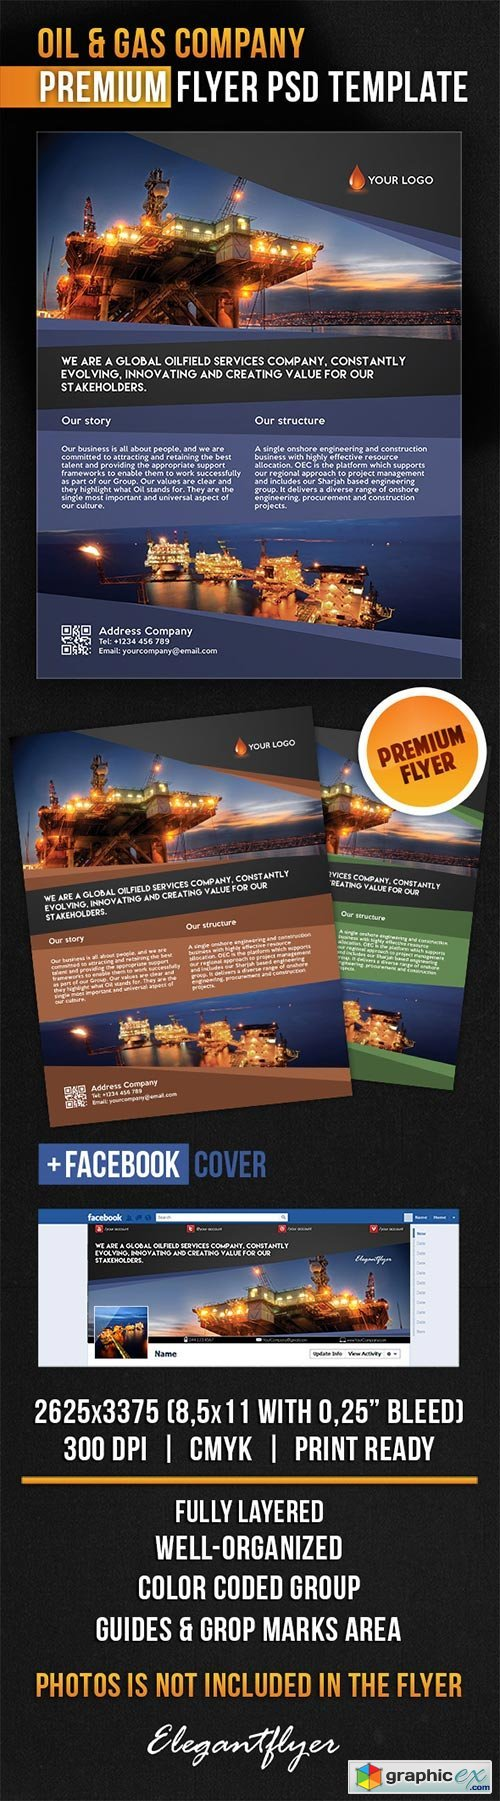 Oil & Gas Company Flyer PSD Template + Facebook Cover